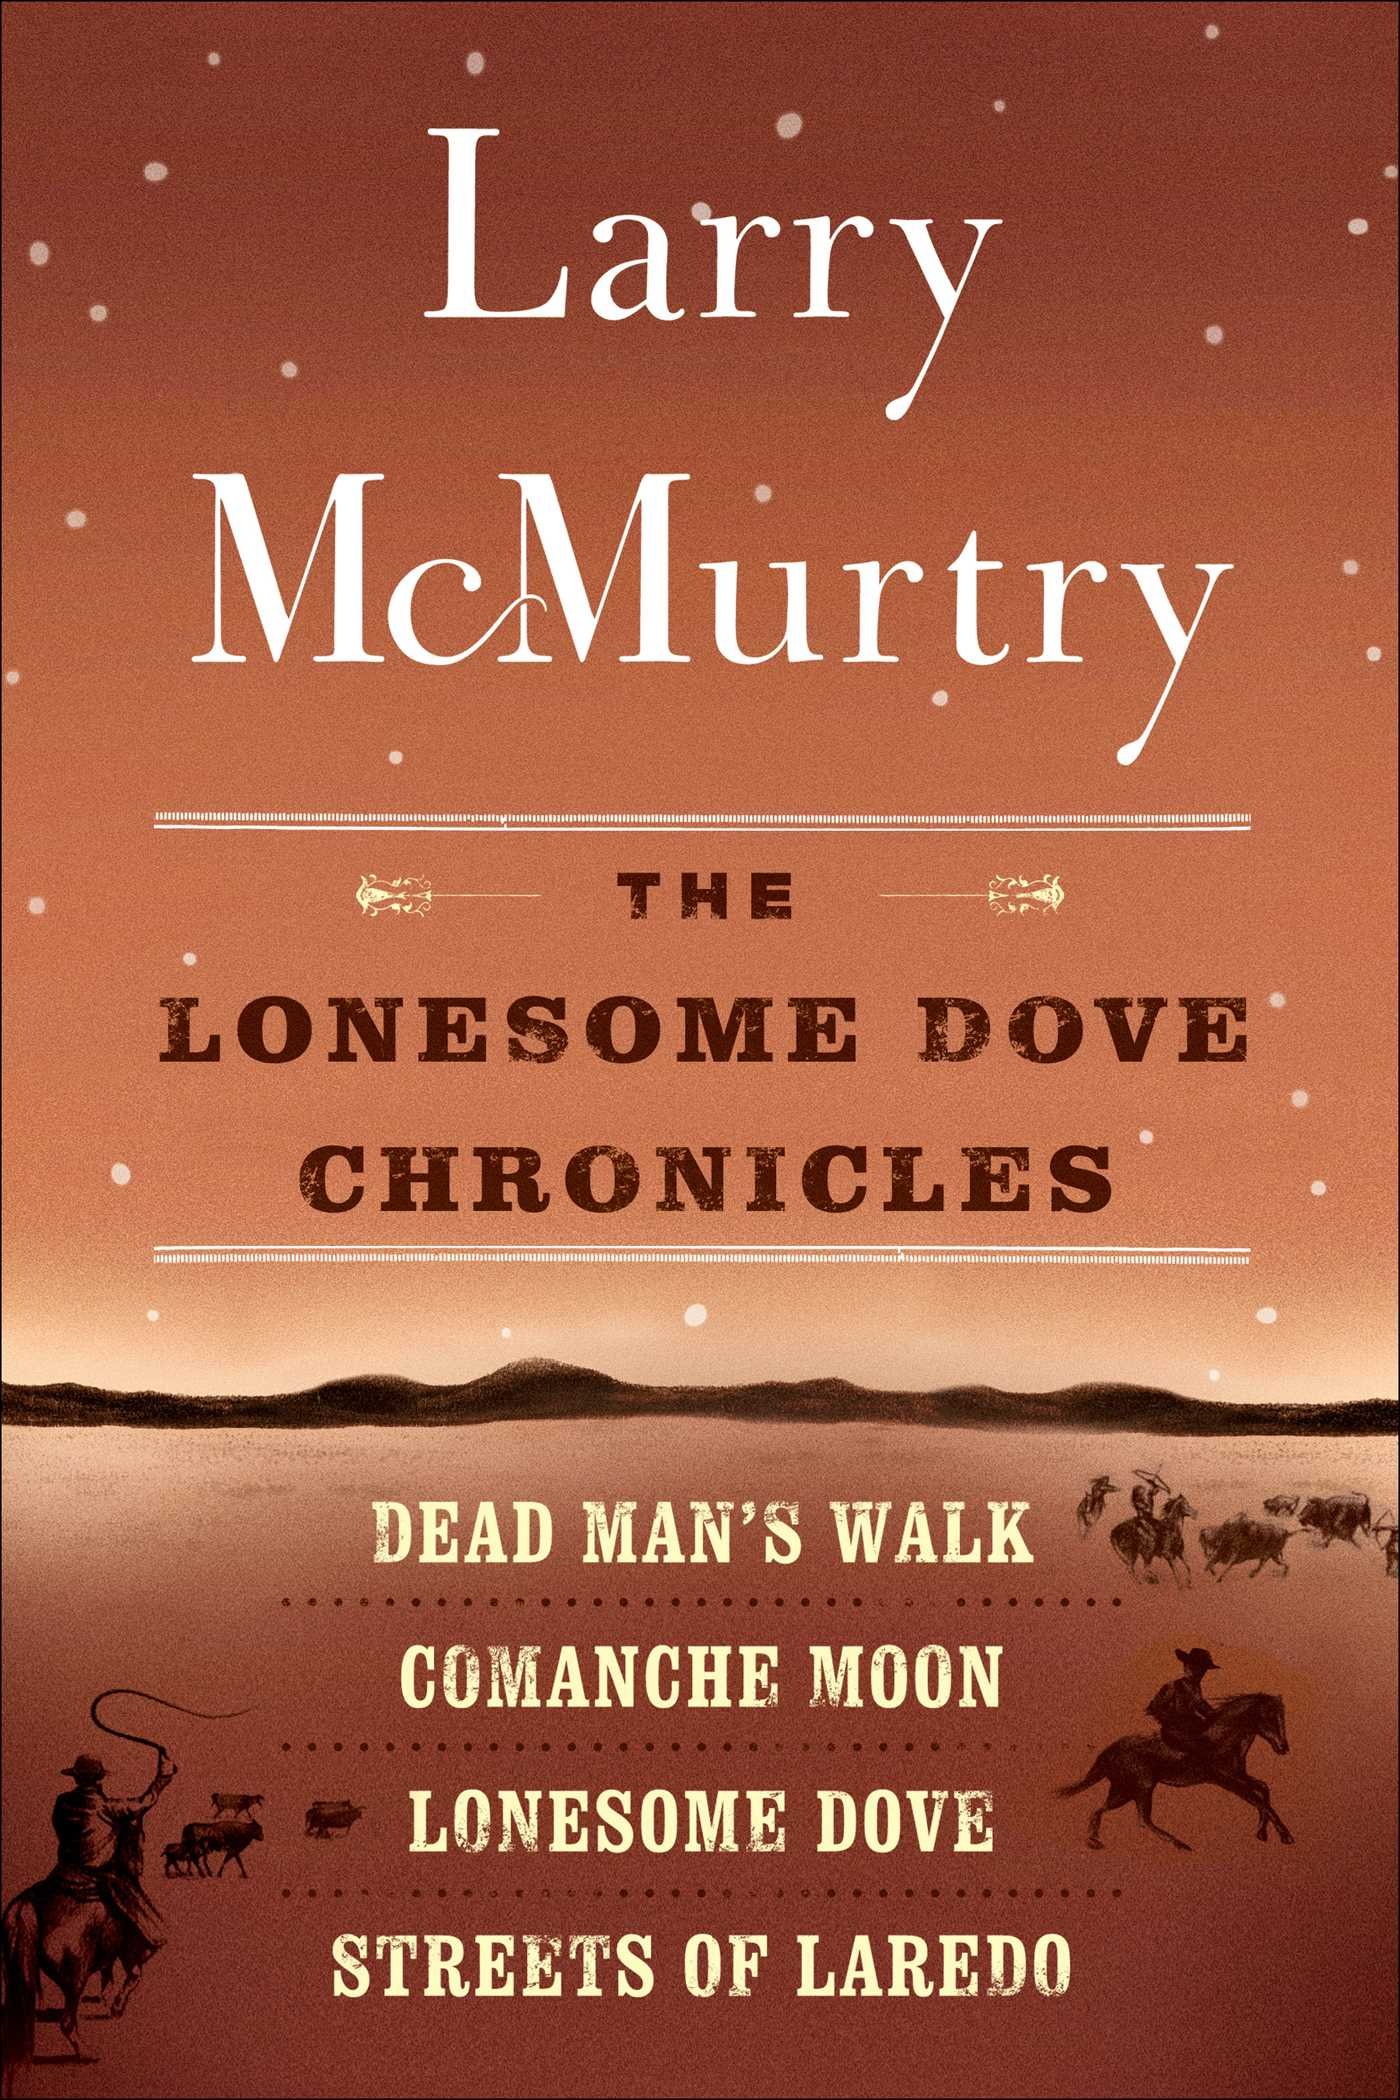 mcmurtry lonesome  The Lonesome Dove Series eBook by Larry McMurtry | Official ...